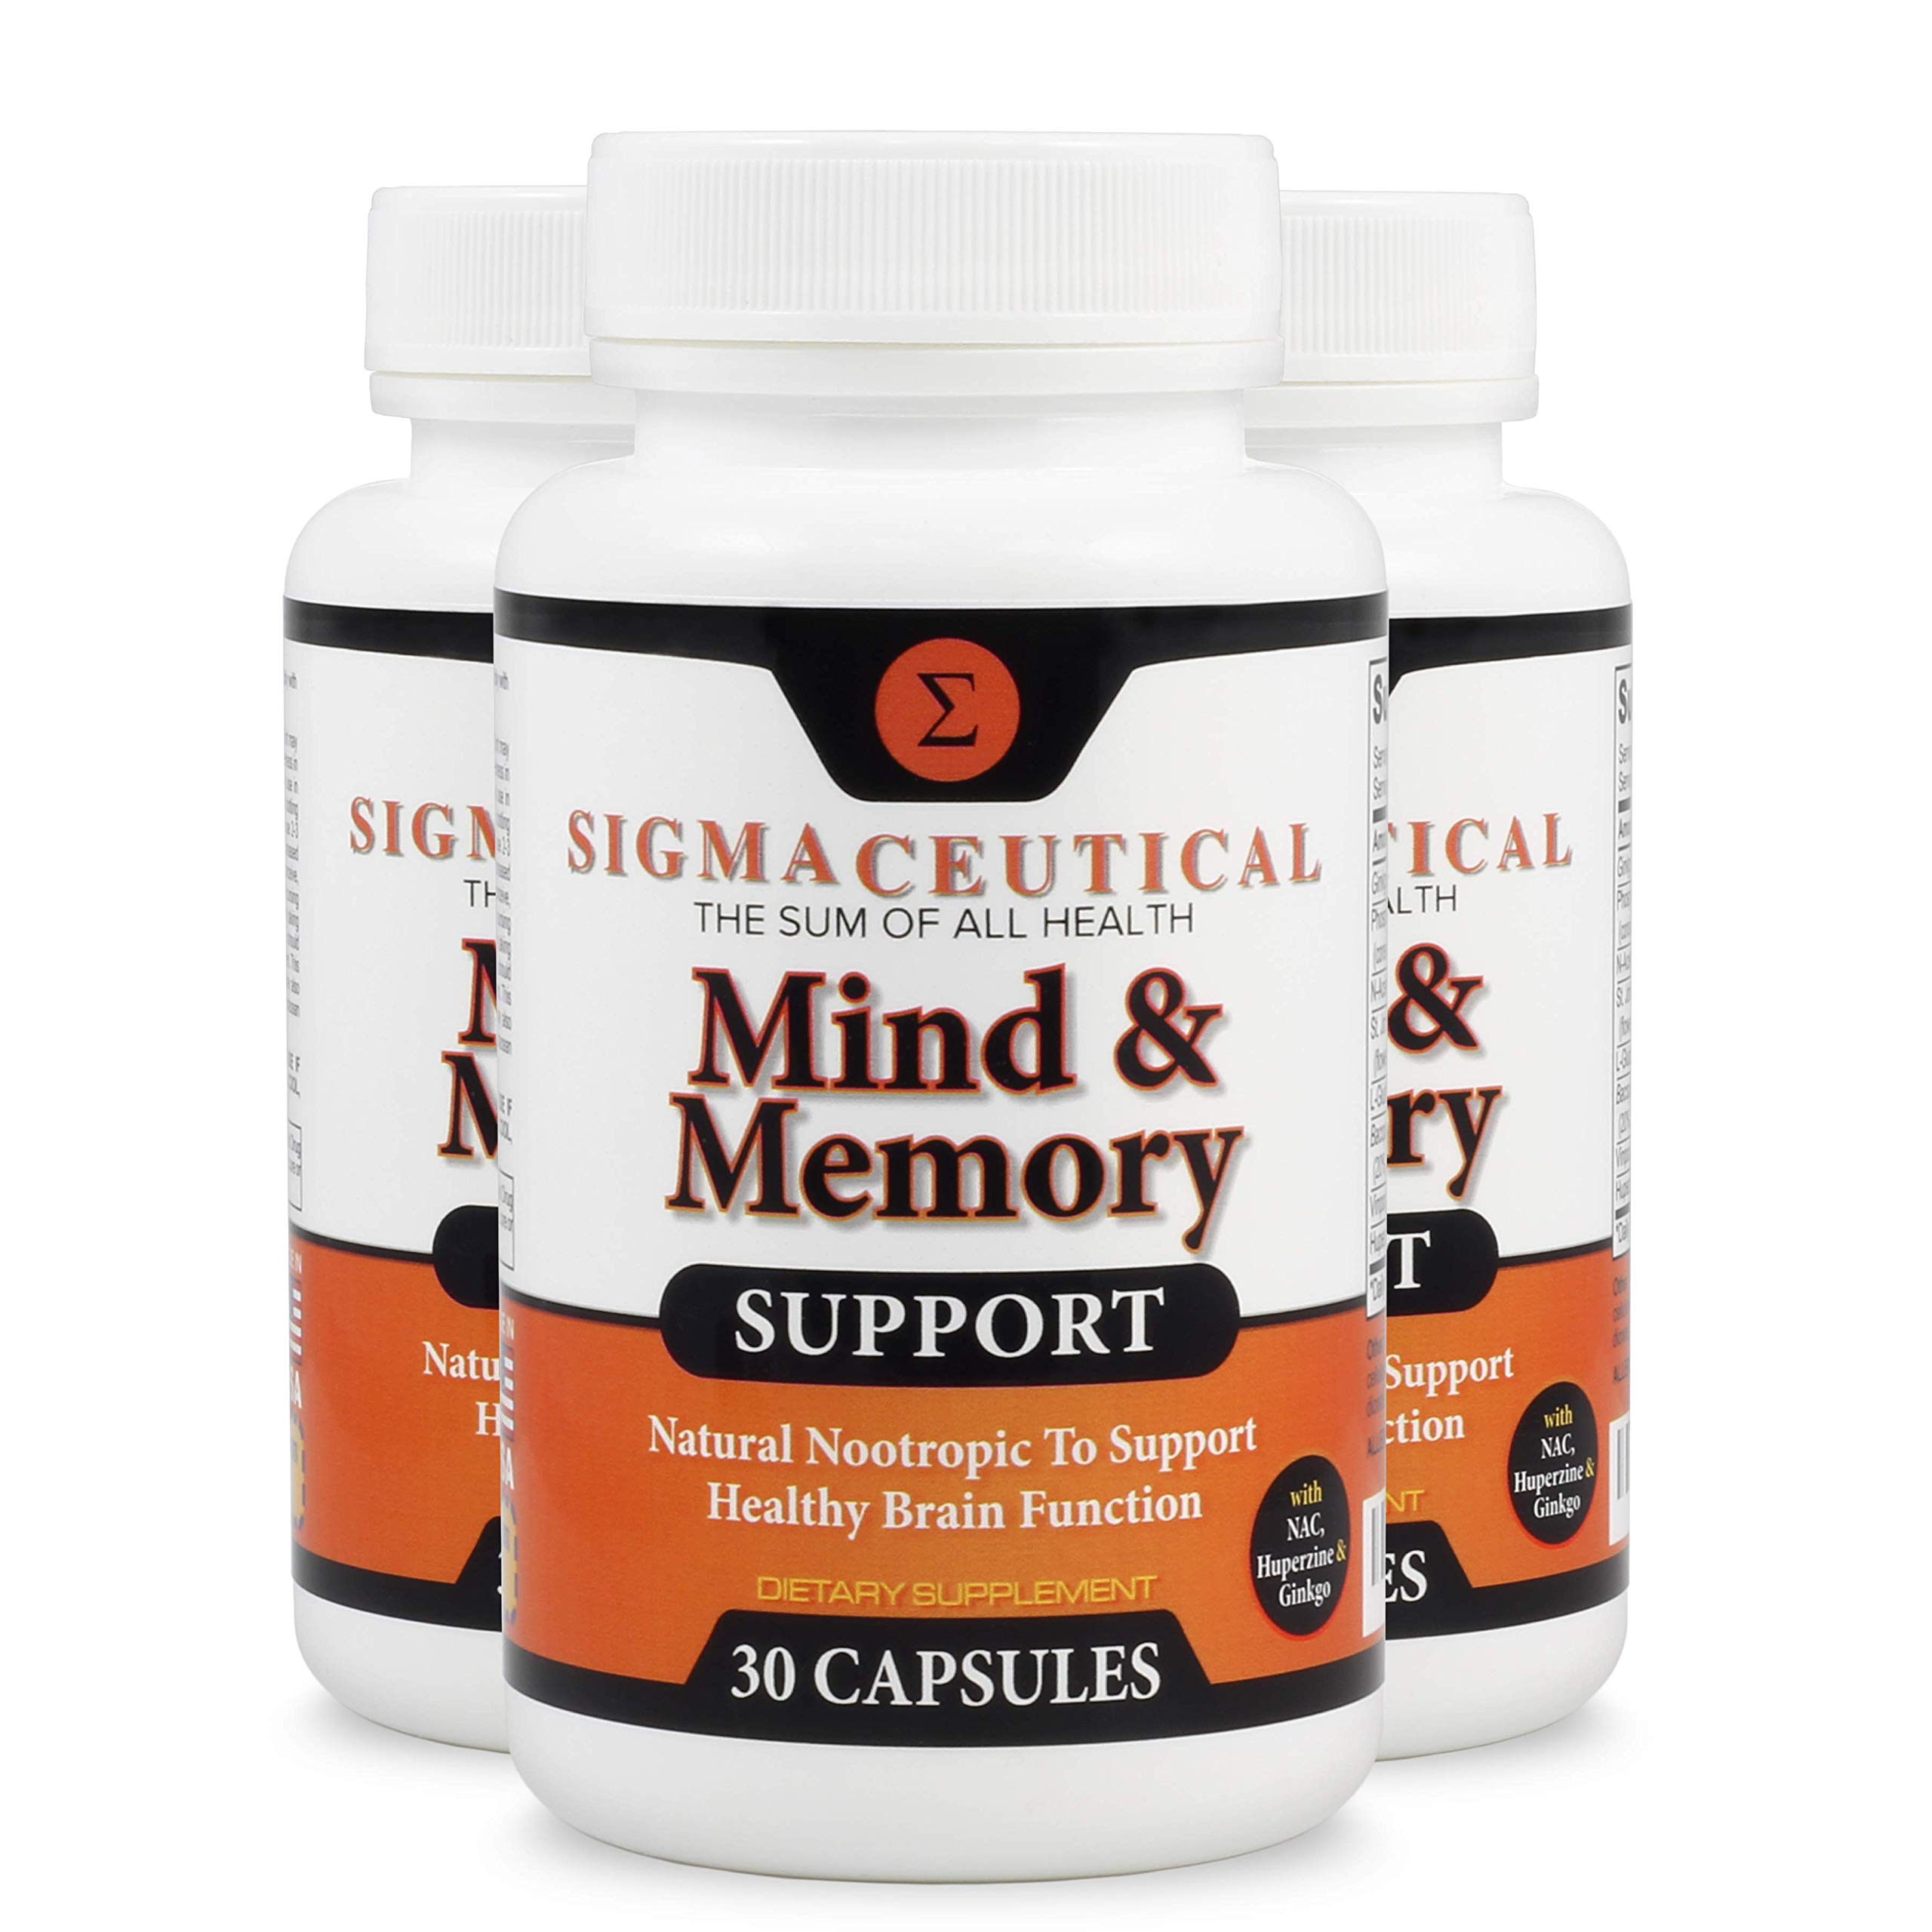 3 Pack of Memory Support Supplement and Brain Booster, Natural Nootropic Mental Focus - 30 Capsules Each